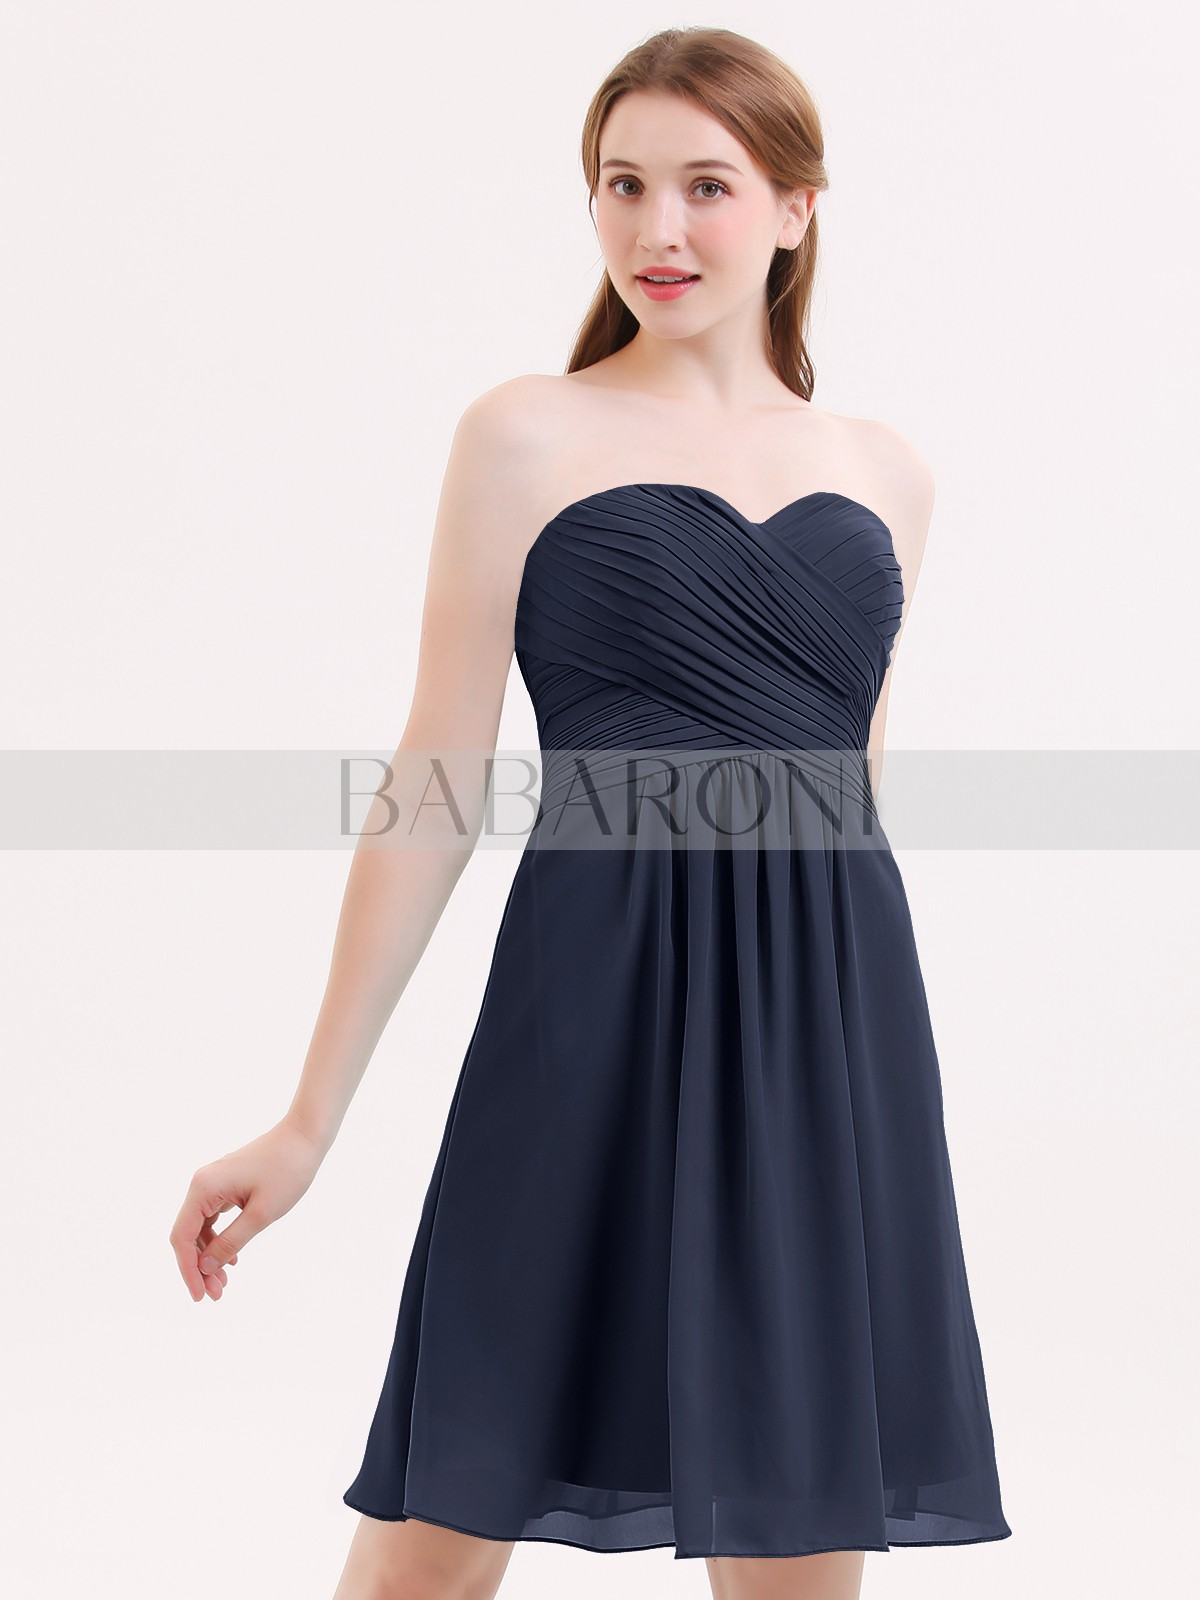 6423abcf174 Dark Navy Samantha Short Strapless Bridesmaid Dress with Sweetheart ...